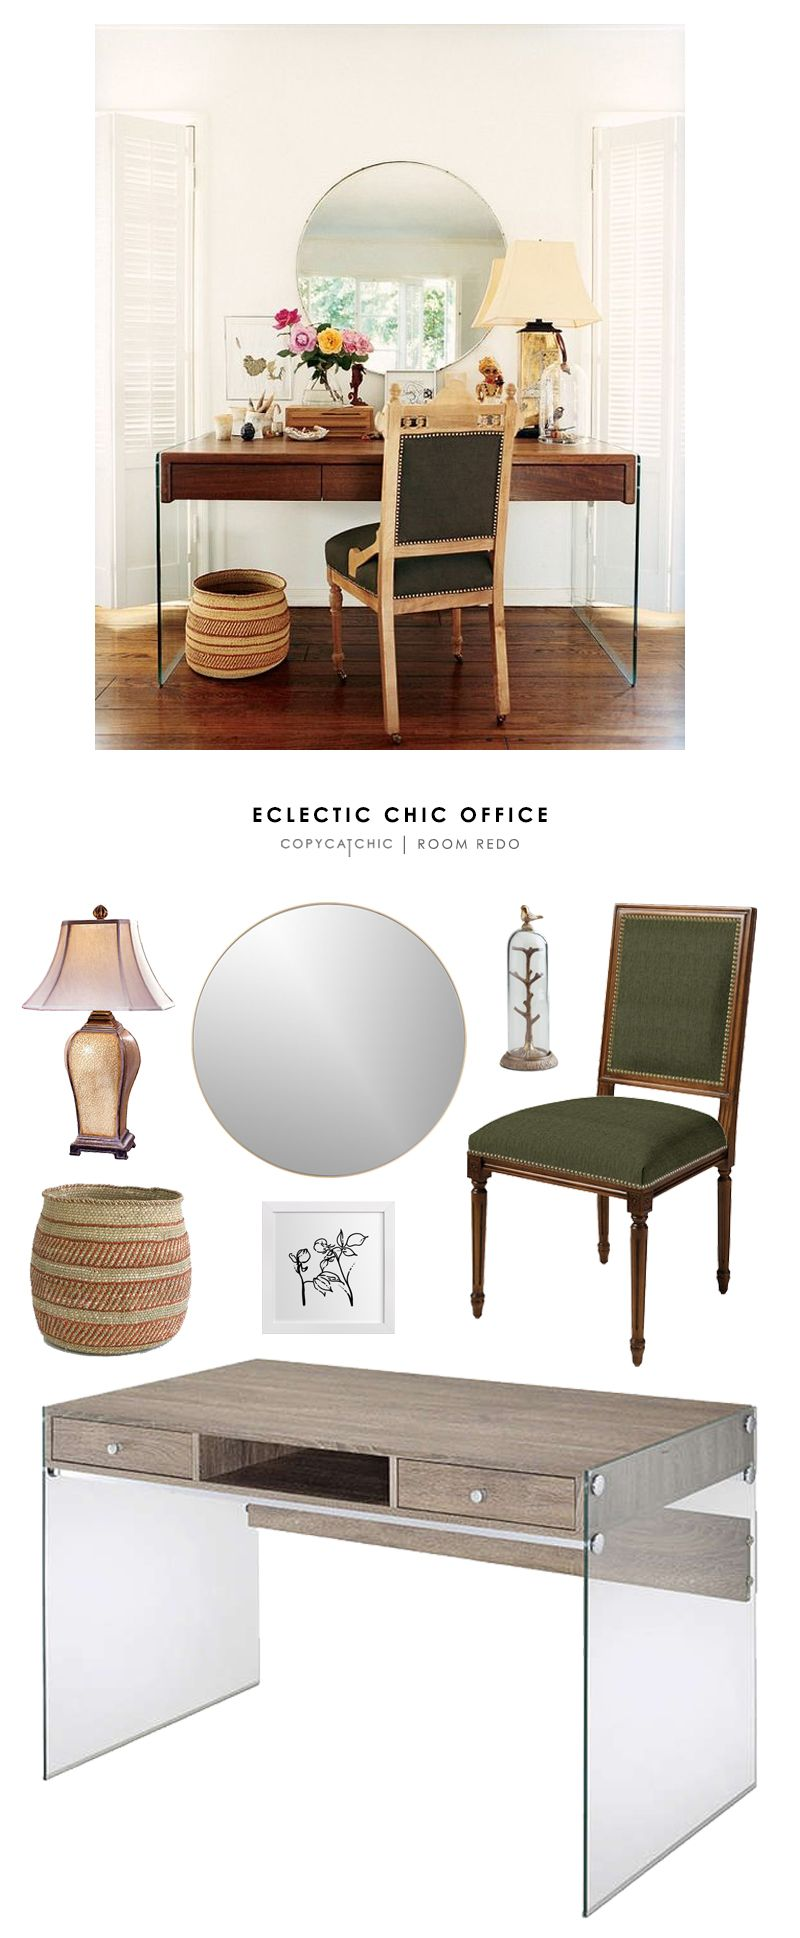 This Eclectic, Chic Office Featured On My Domaine Is Recreated For Less By  @copycatchic